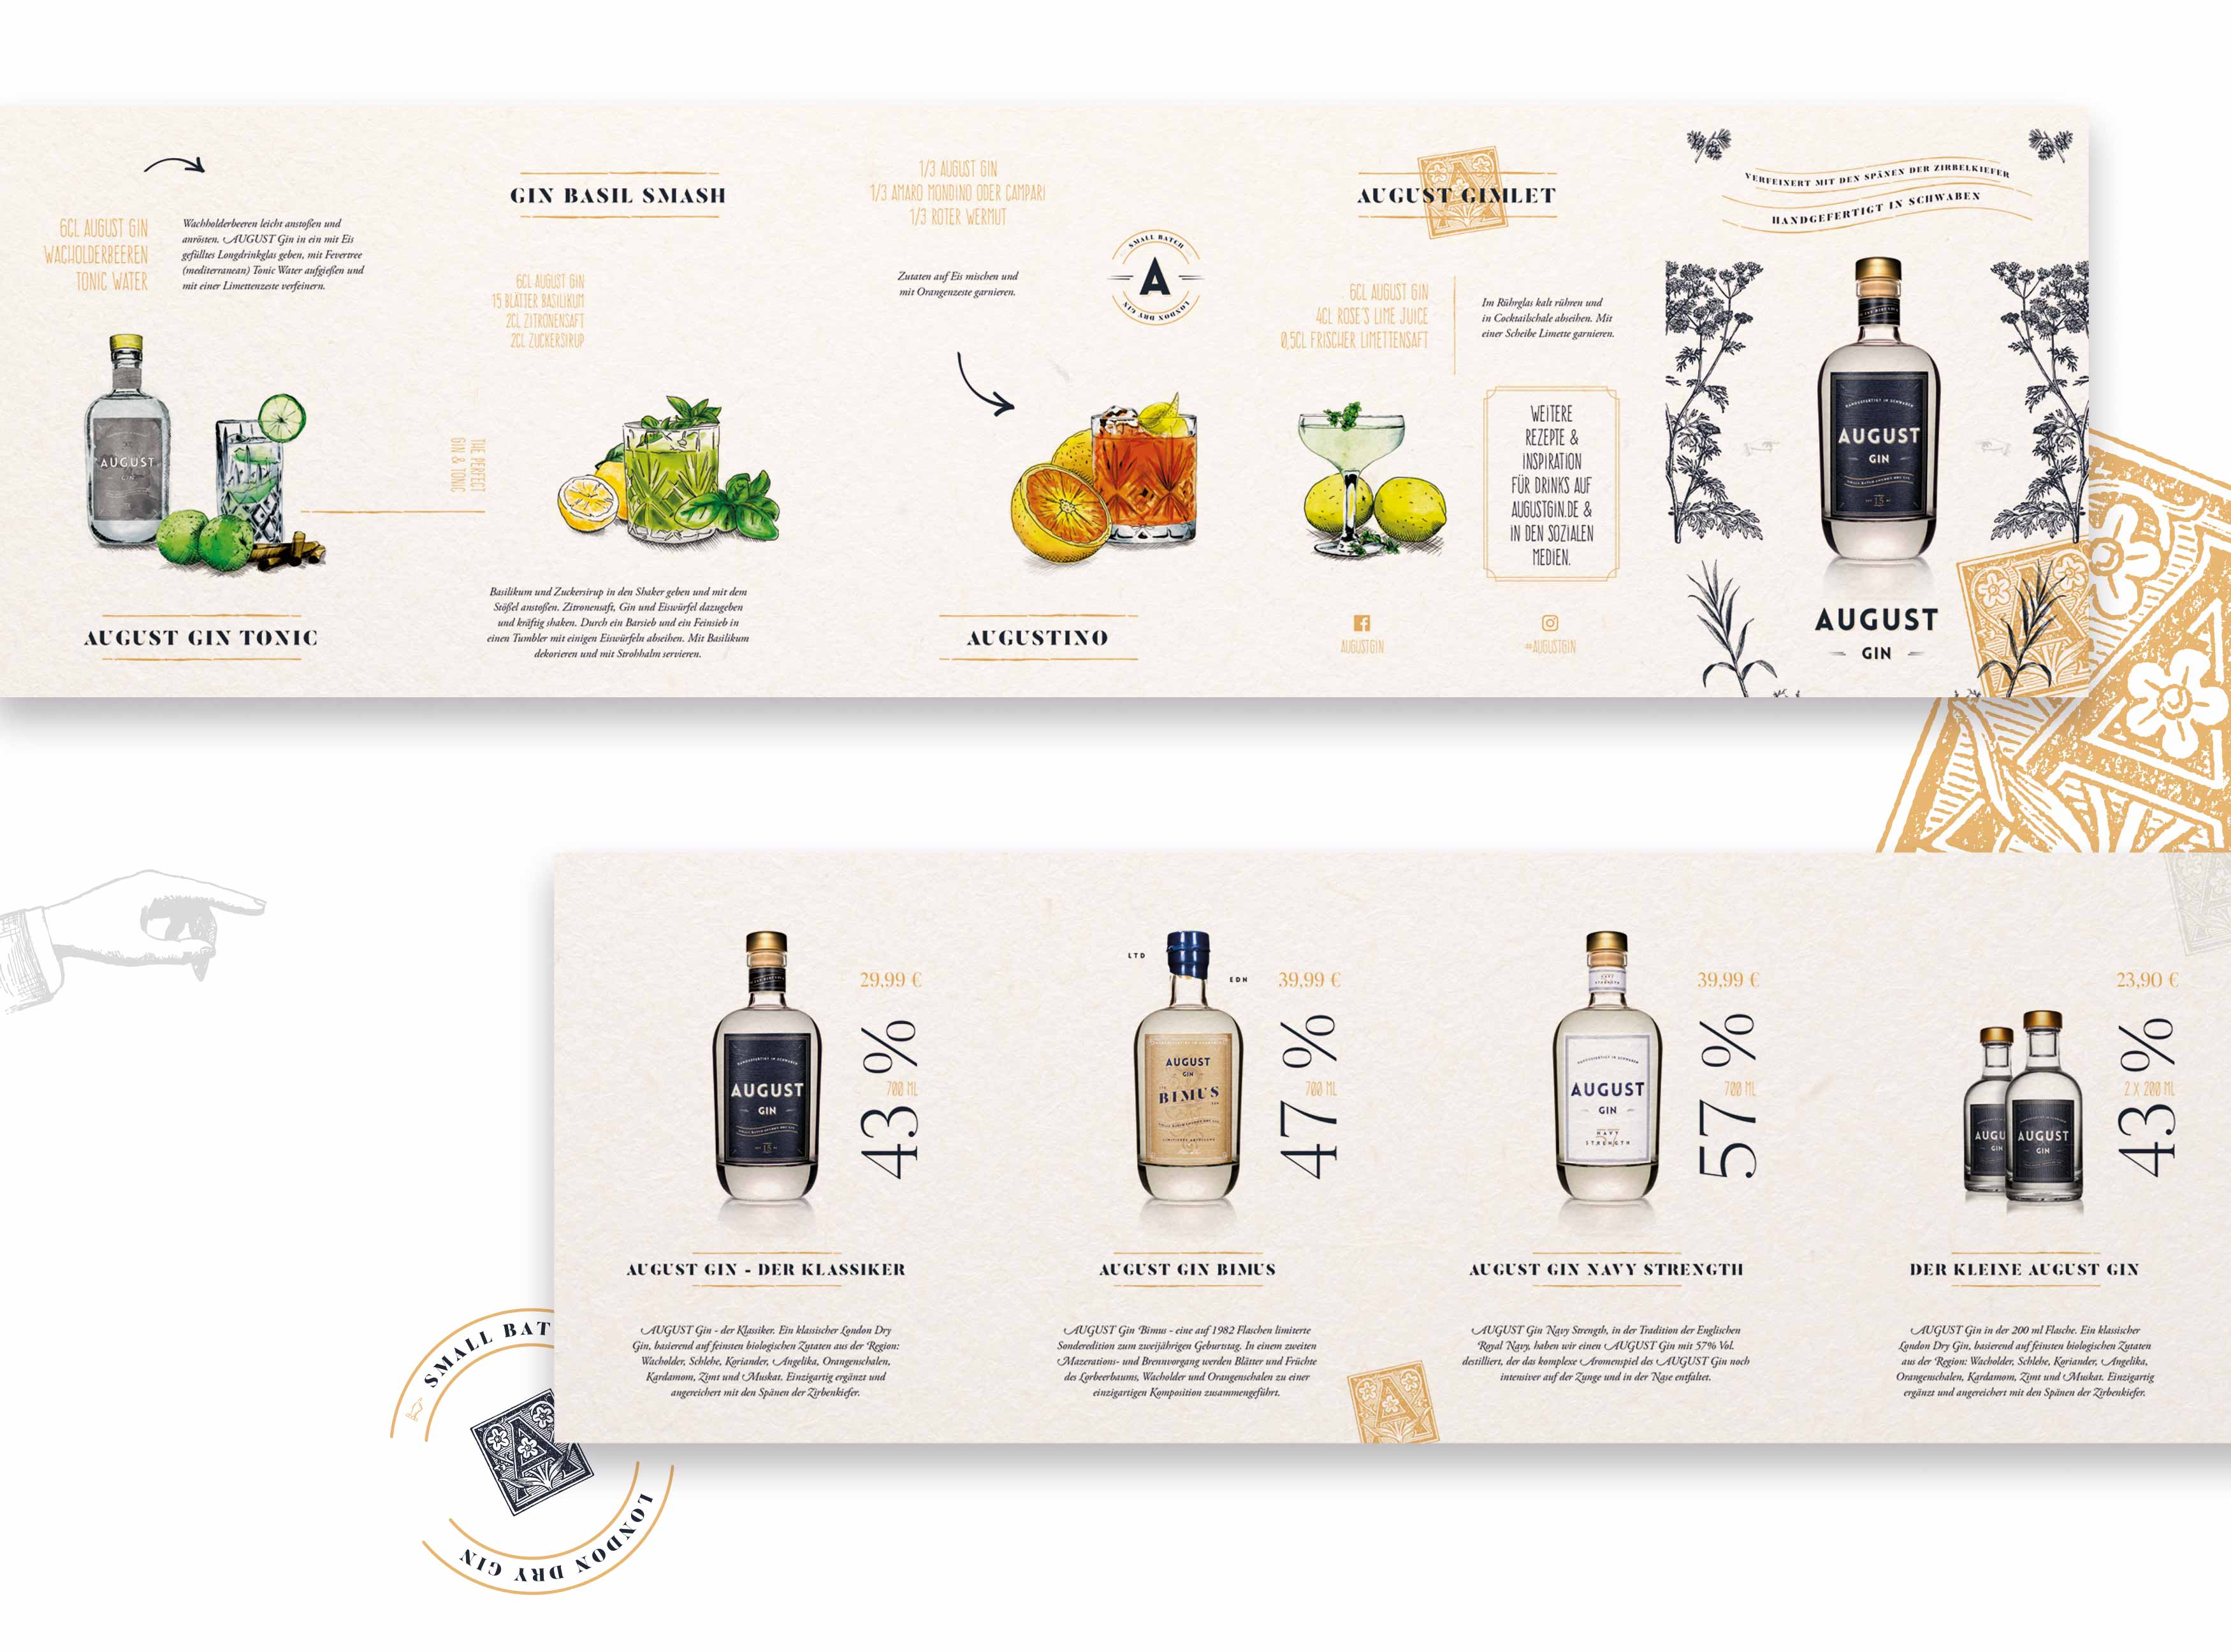 6-product-range-receipes-august-gin-augsburg-design-branding